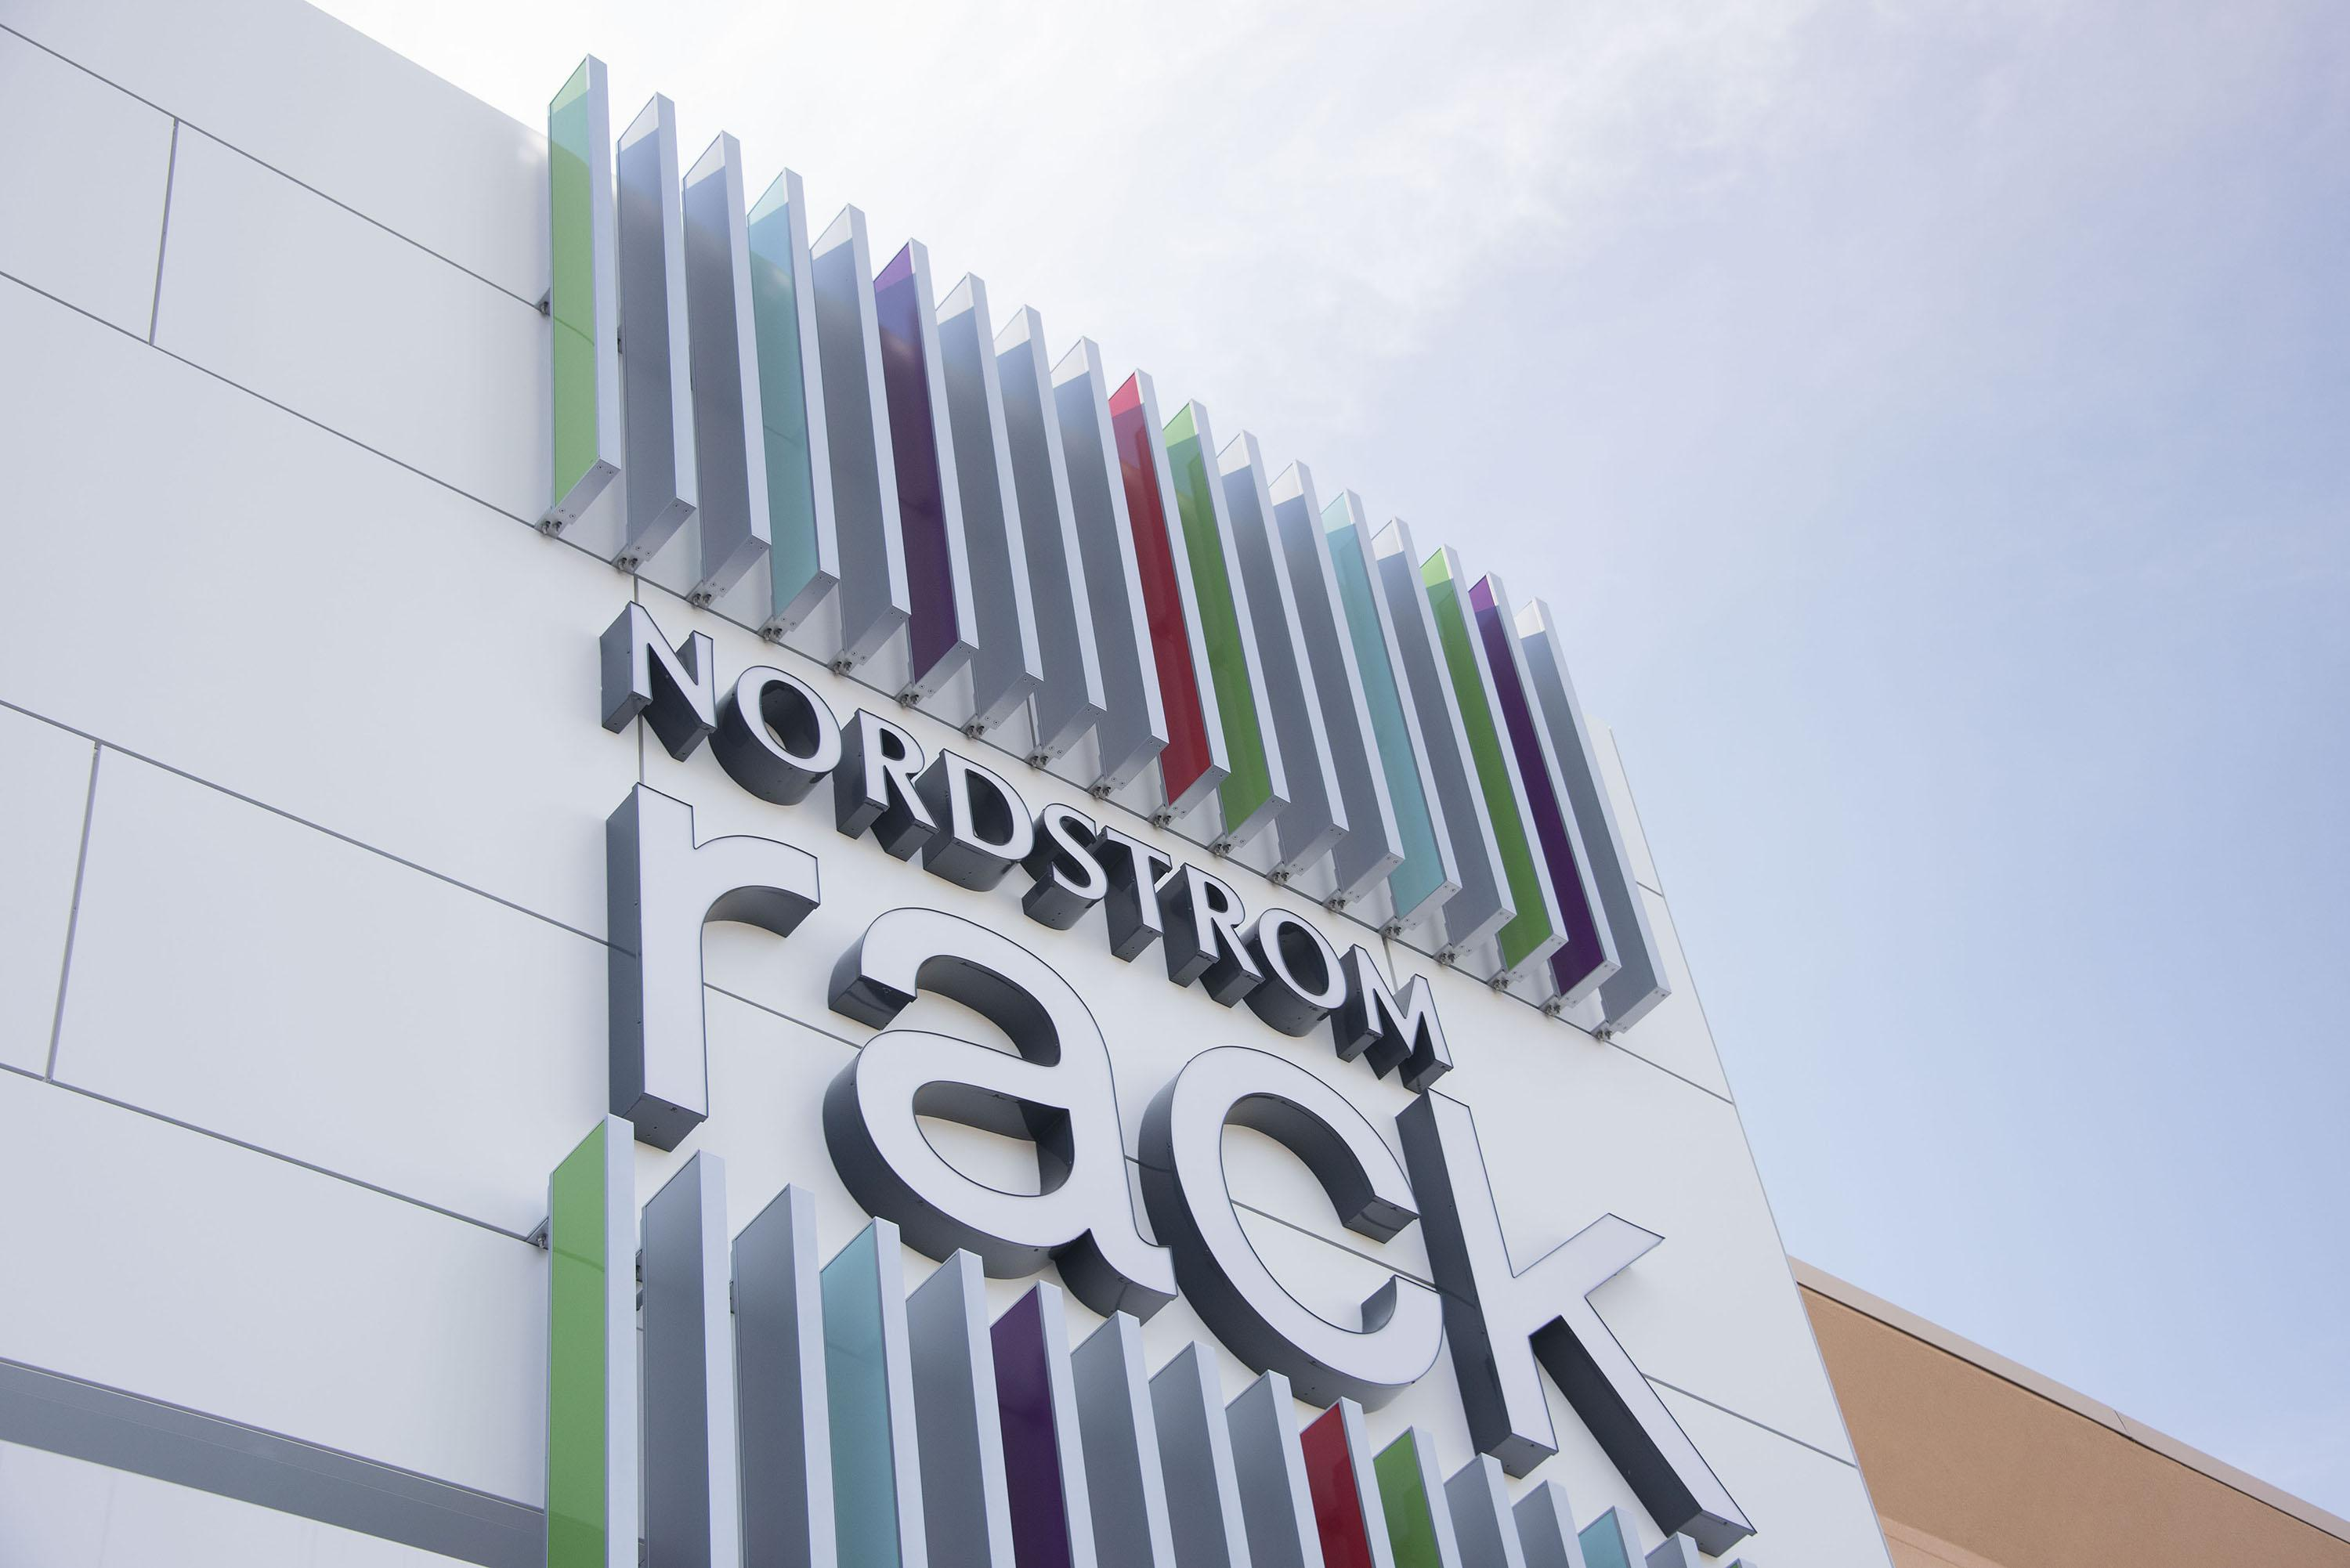 Teens accuse Nordstrom Rack of racial profiling, store apologizes